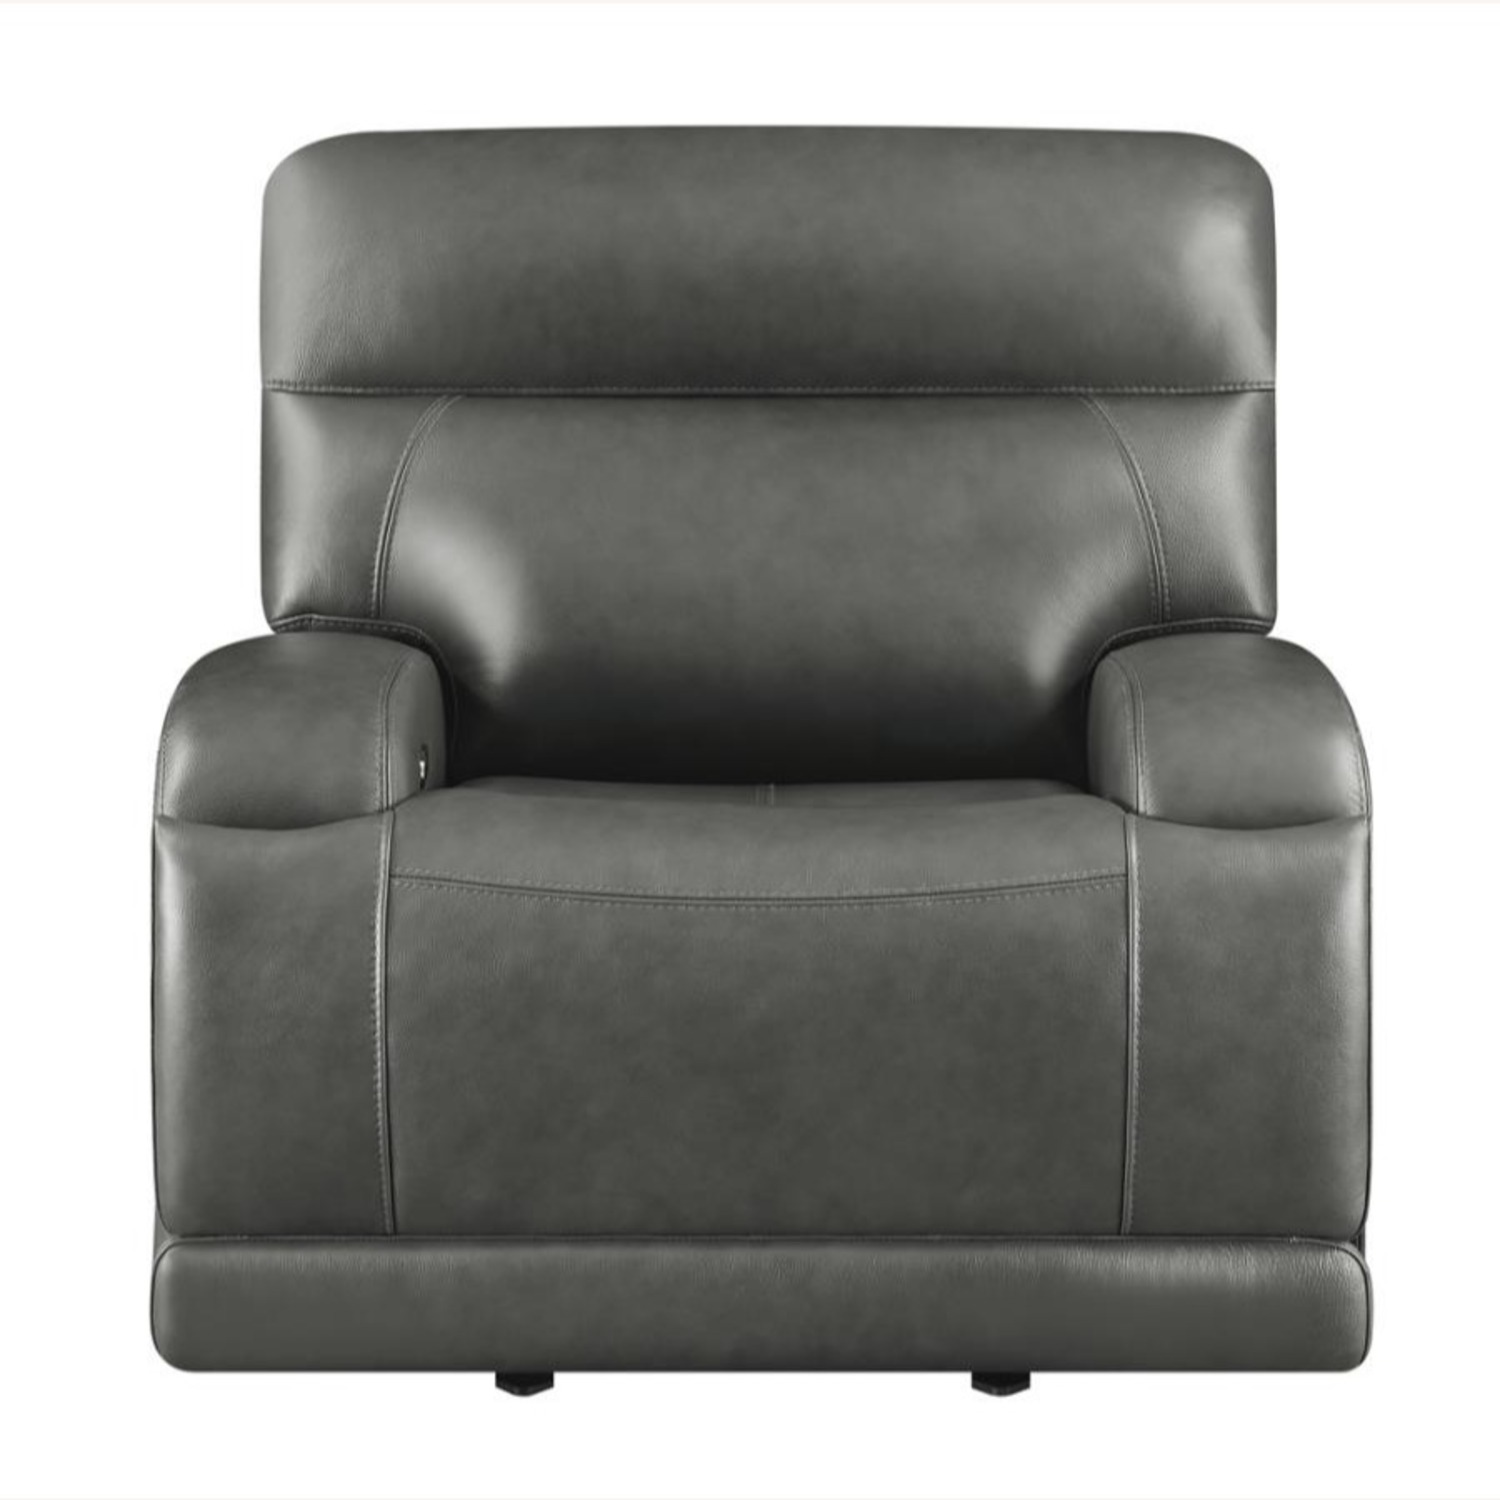 Power Recliner Chair In Charcoal Leatherette - image-2